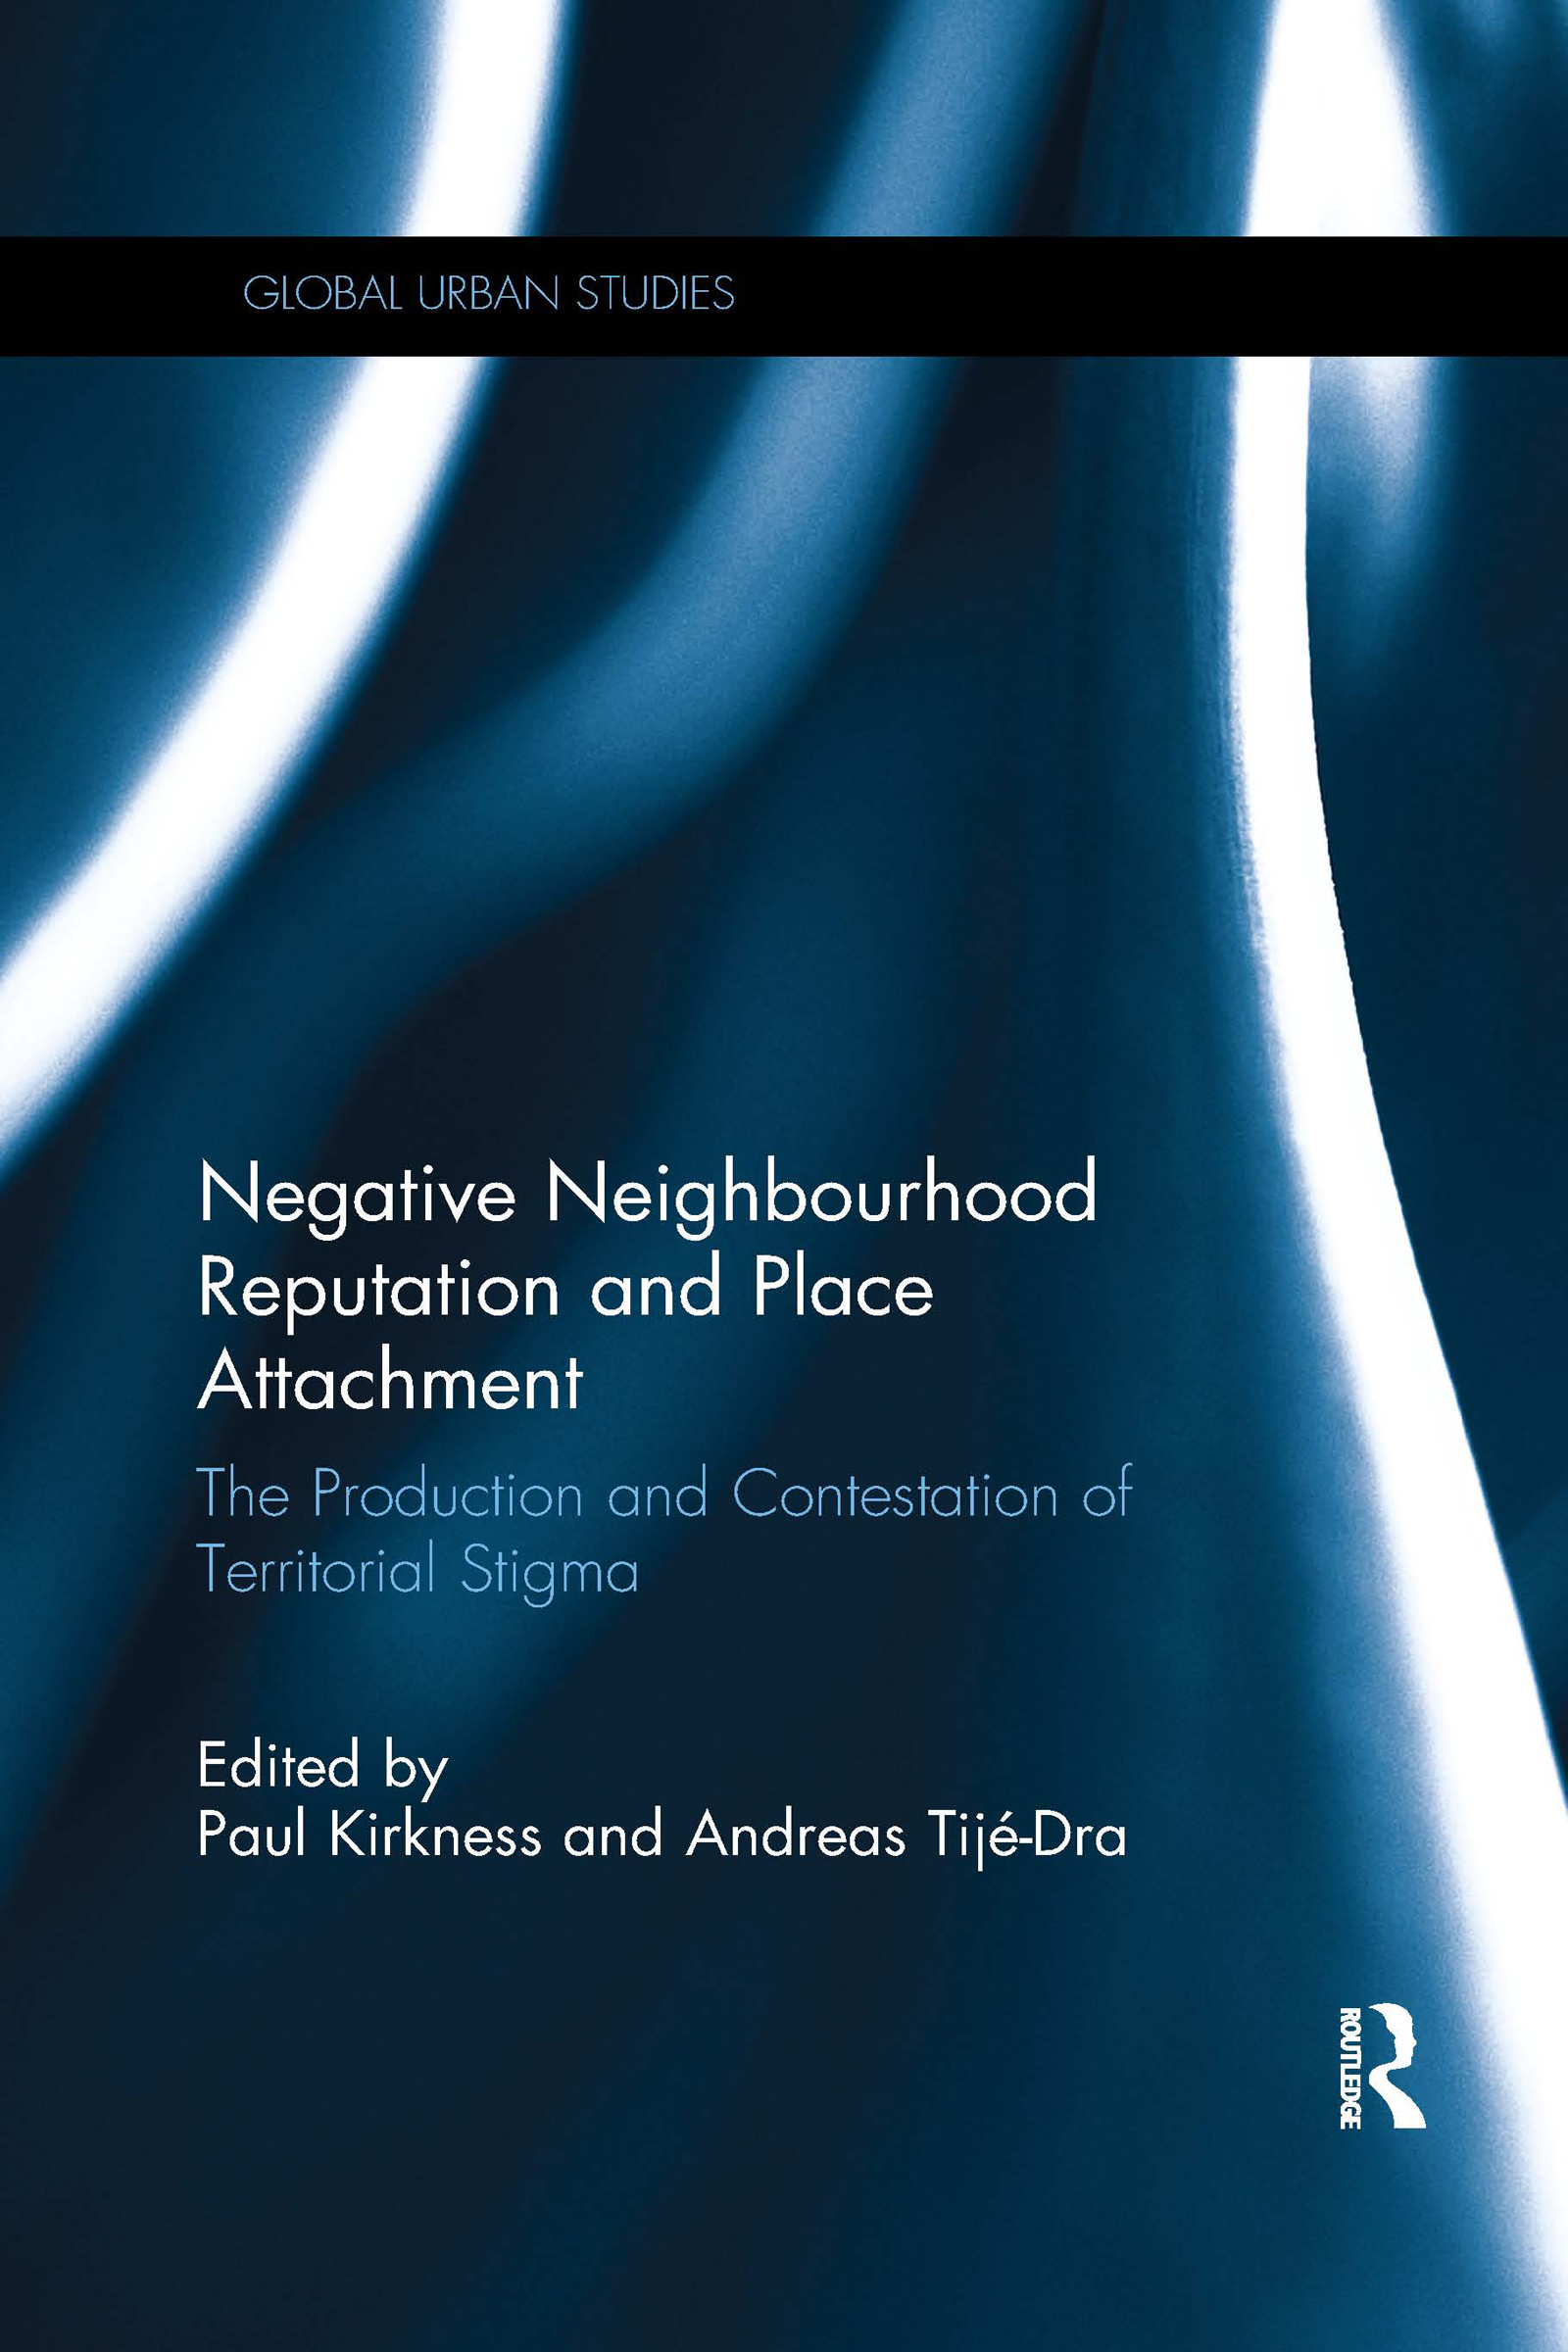 Negative Neighbourhood Reputation and Place Attachment